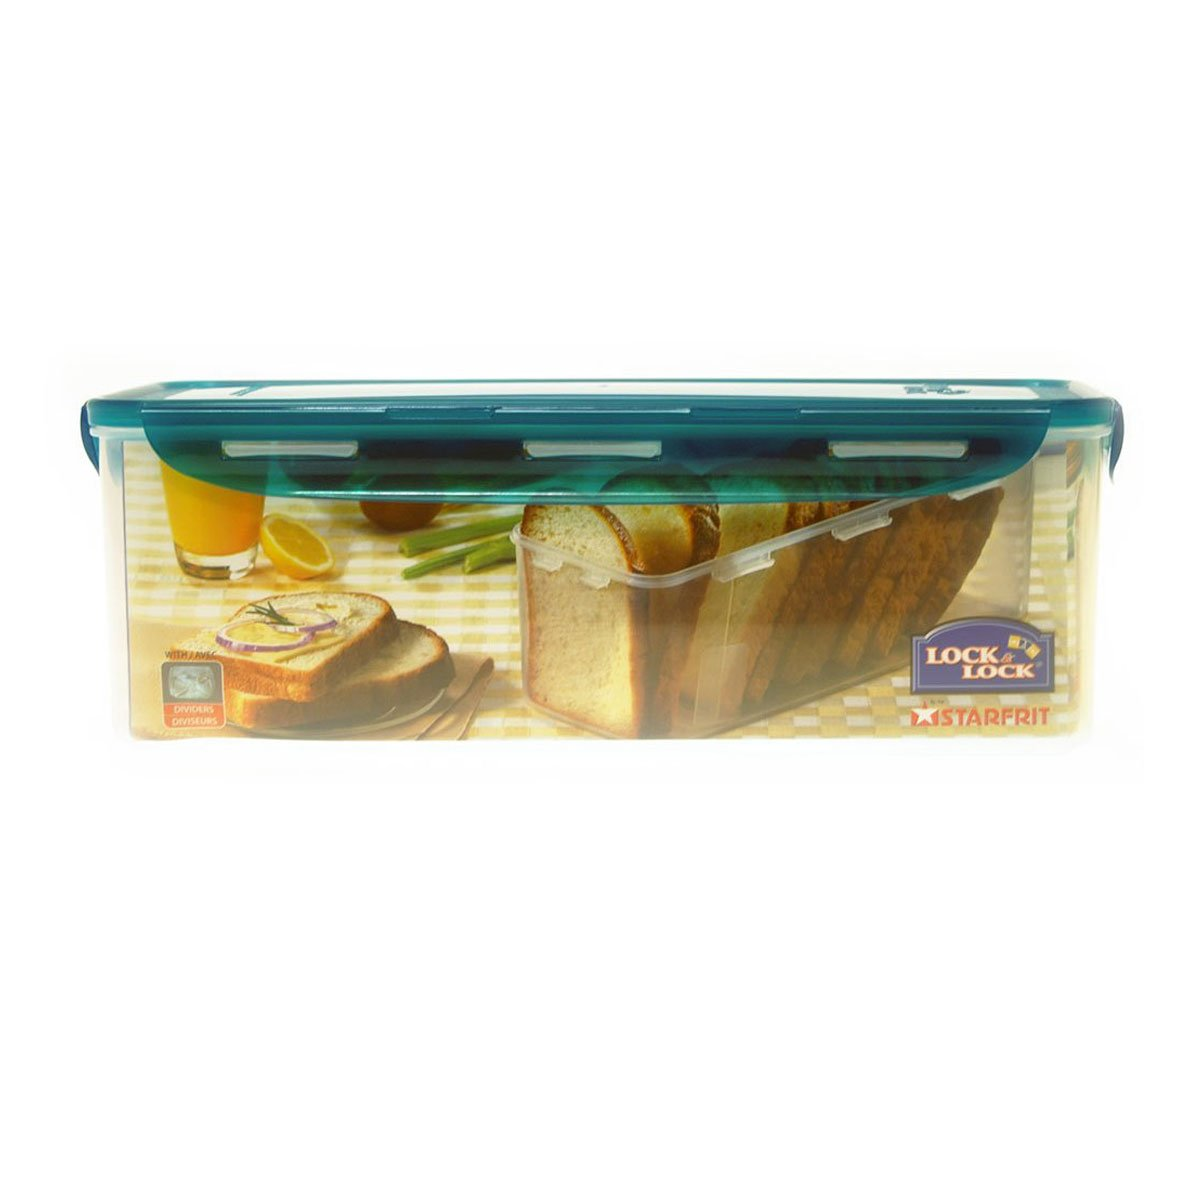 Lock & Lock 5L Bread Container with Divider Lock & Lock by Starfrit 94507